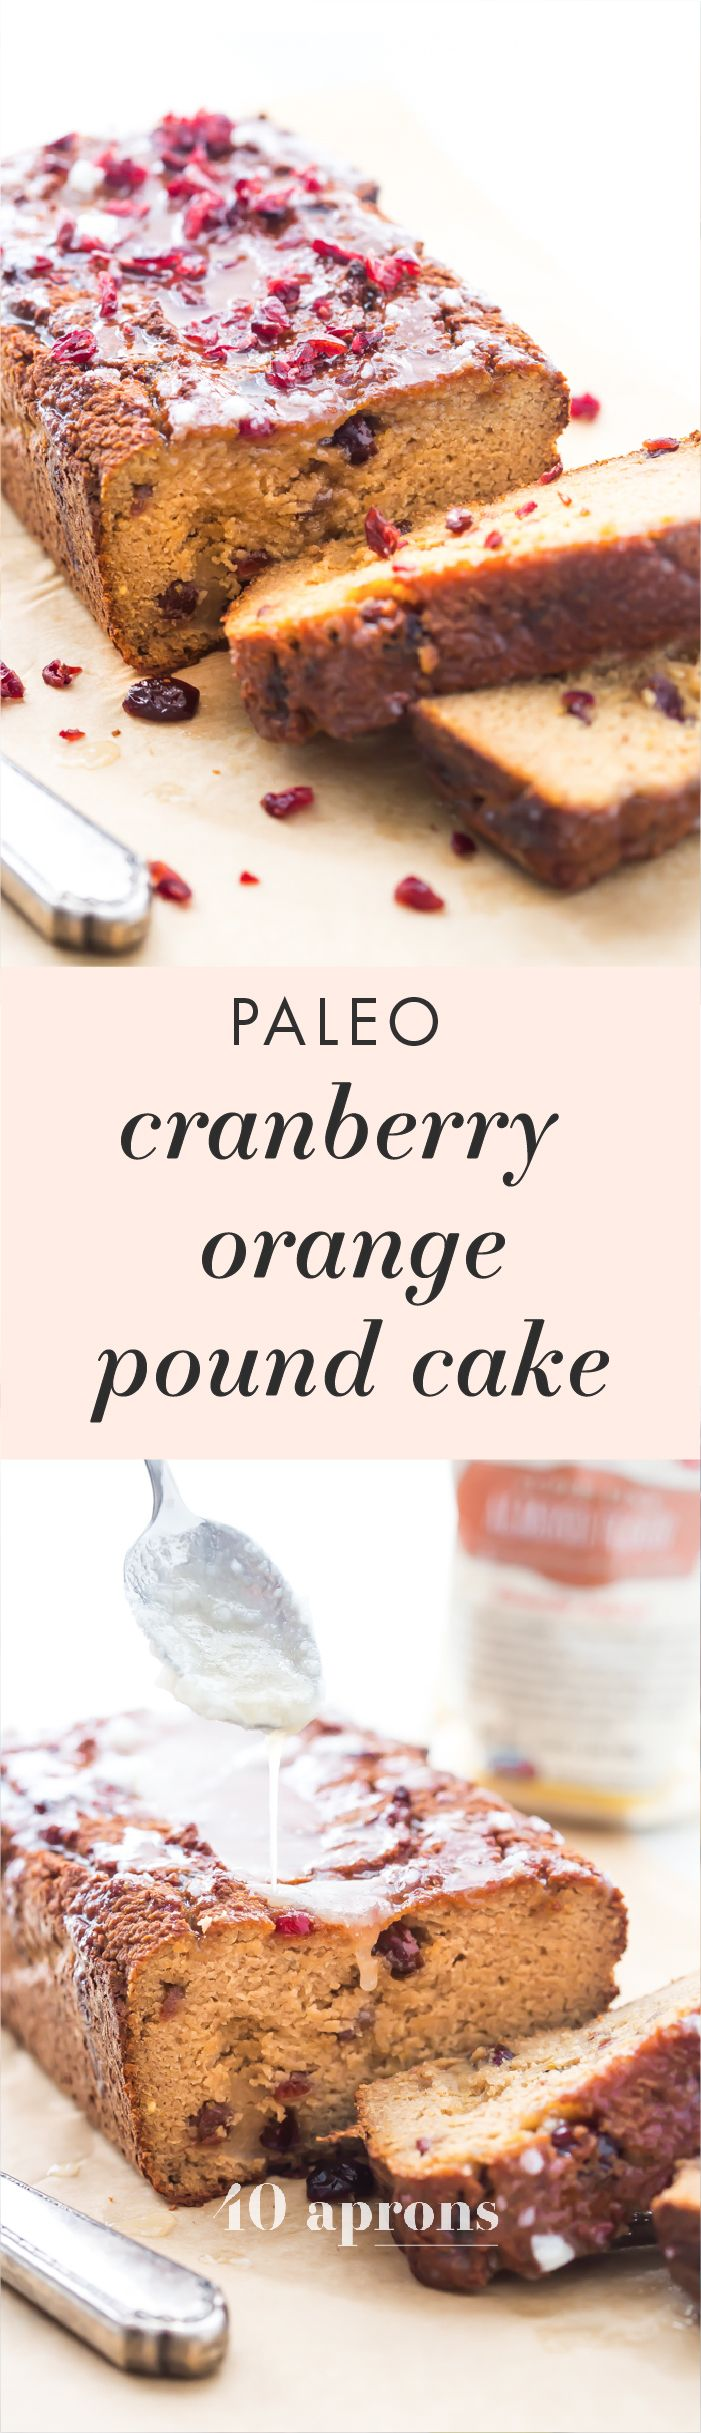 This paleo cranberry orange pound cake is such a wonderful paleo fall recipe! With fresh orange flavor and sweet-tart dried cranberries, this paleo cranberry orange pound cake is tender, moist, and full of flavor. This paleo cranberry orange pound cake takes full advantage of such a fantastic flavor combo and uses all healthier ingredients to make a lovely paleo fall recipe!